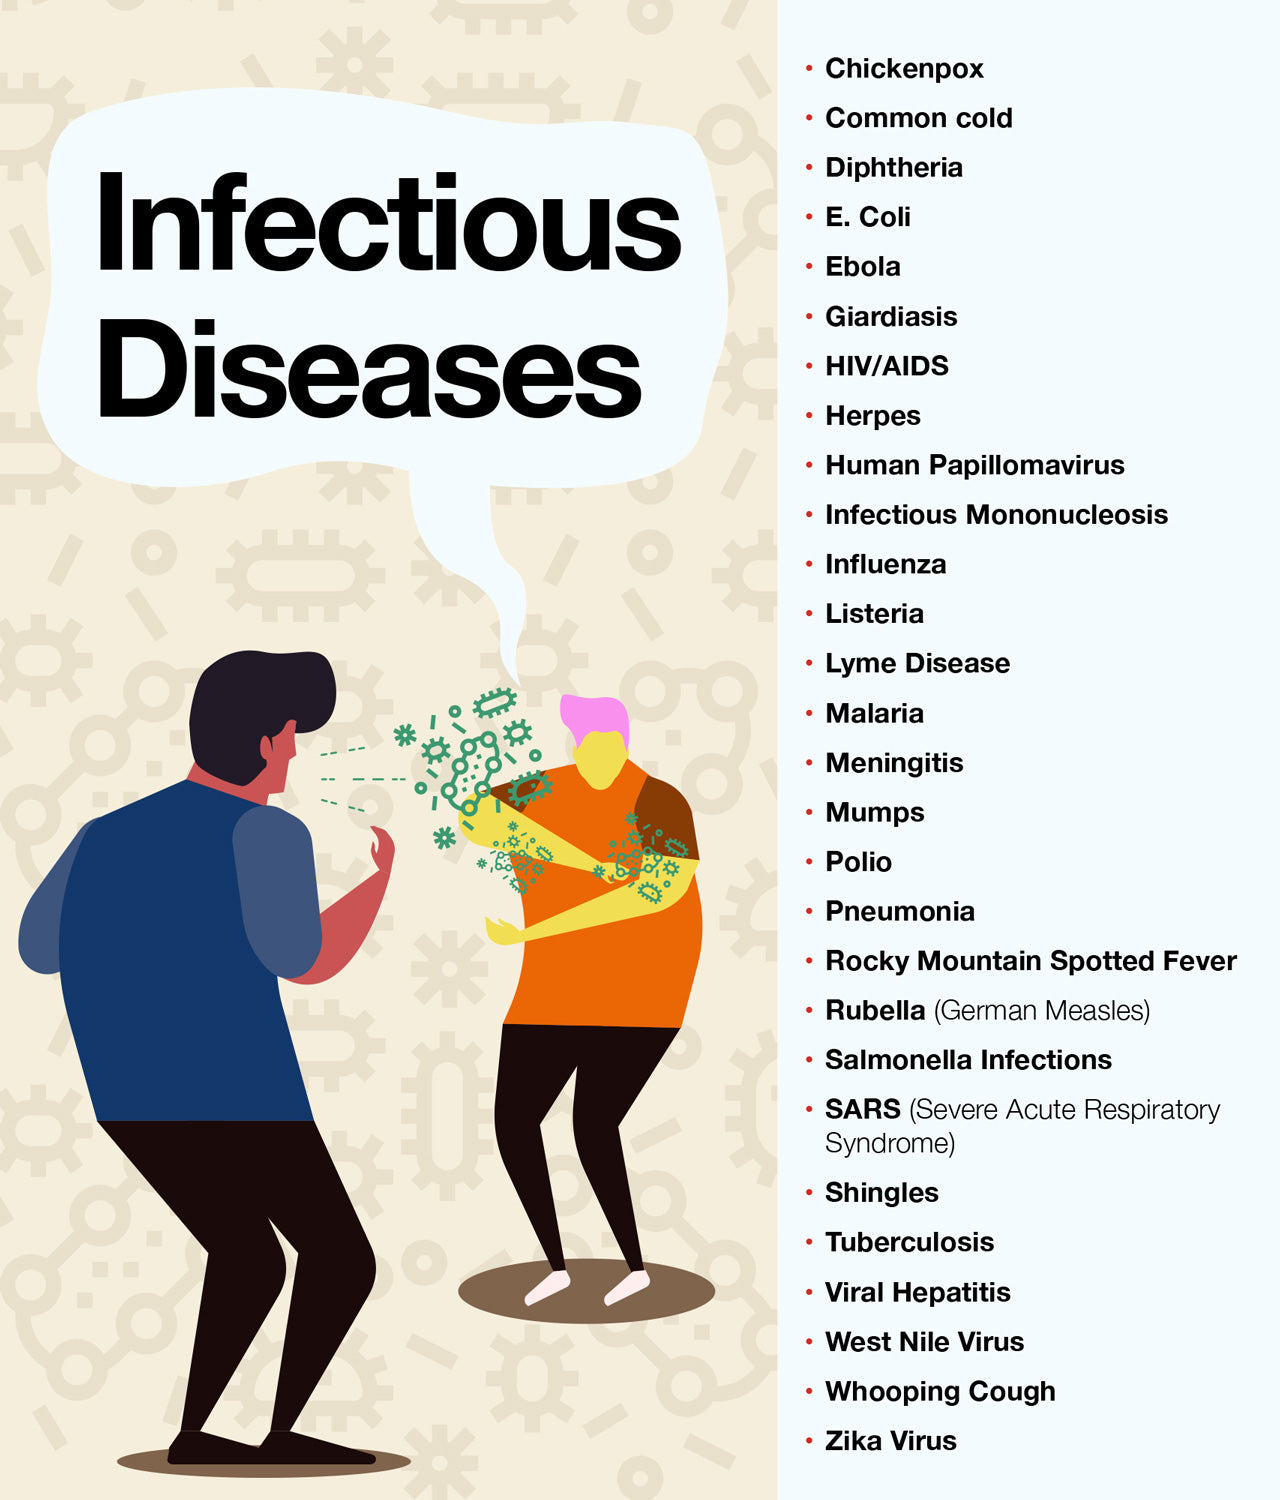 List of infectious diseases